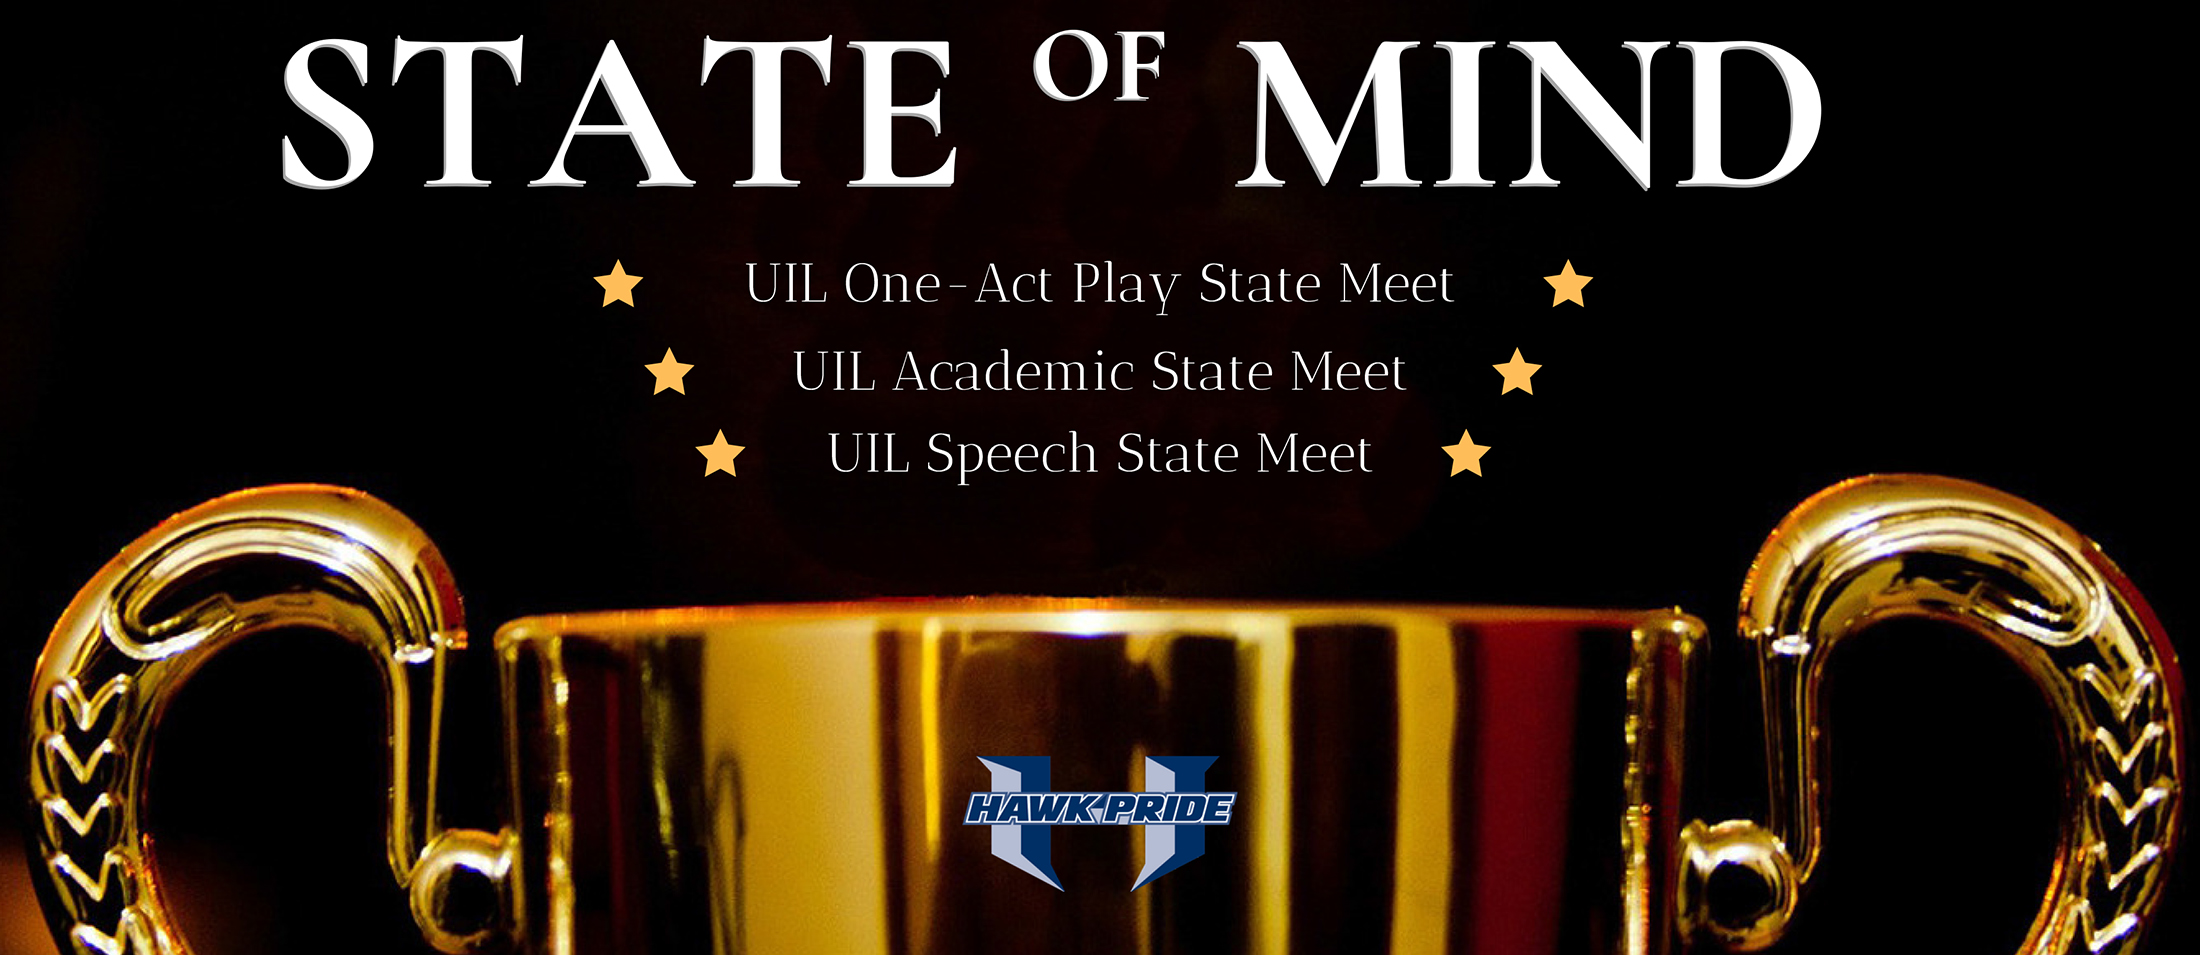 State academic, one-act play meets